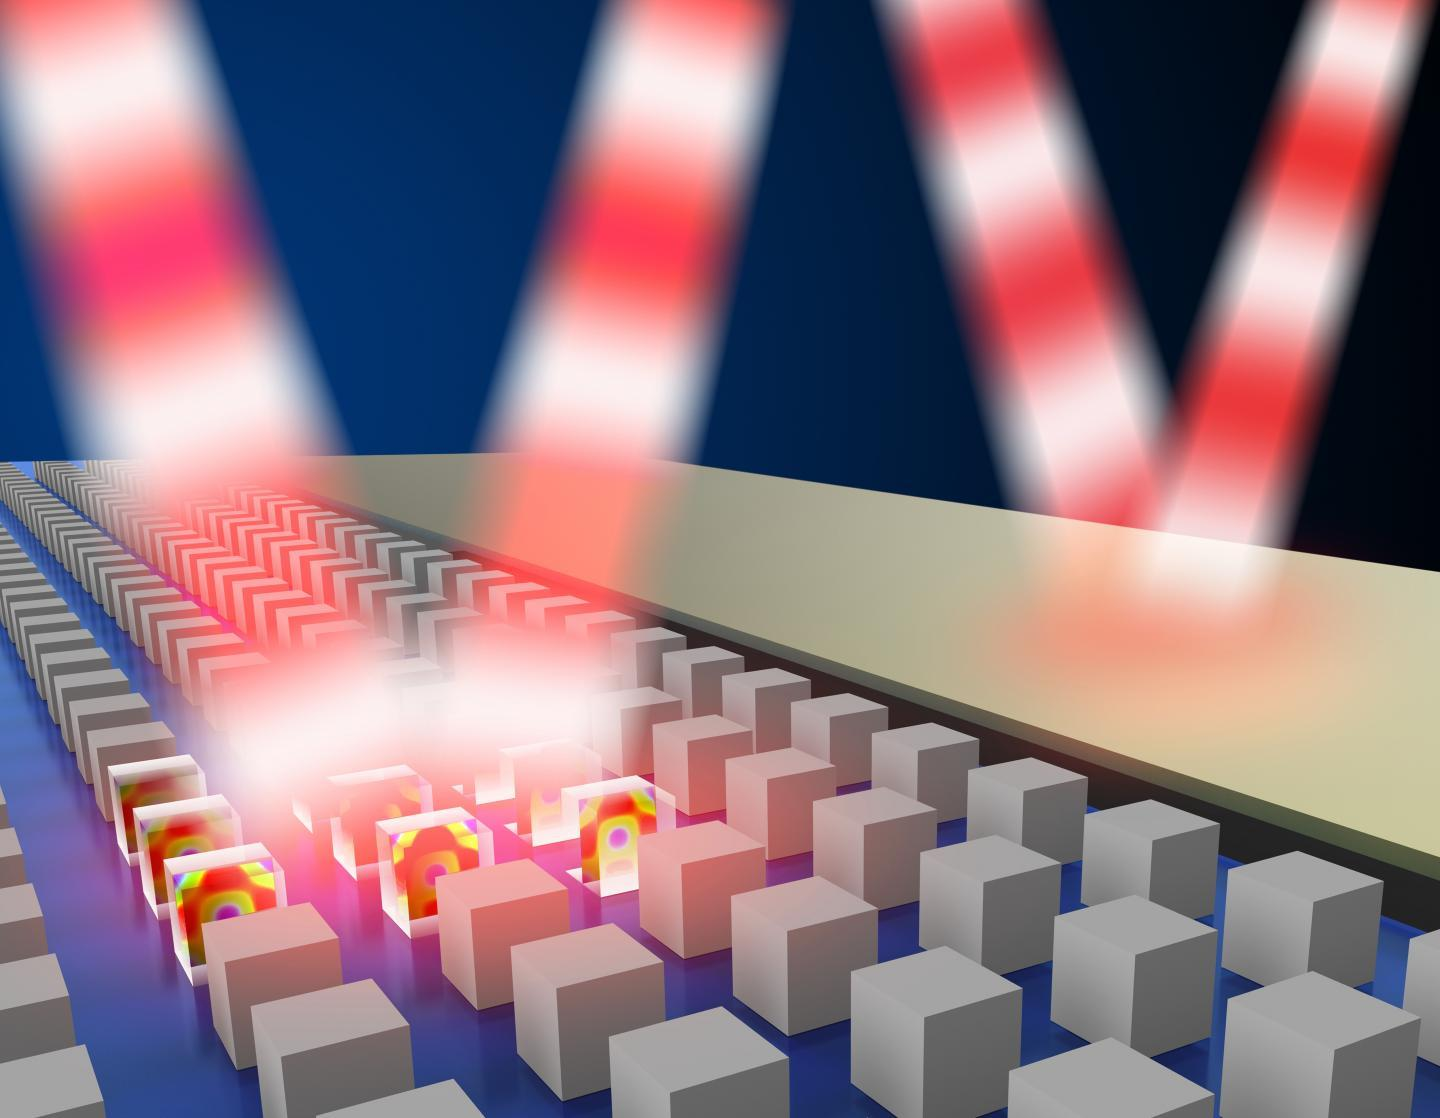 Magnetic mirrors enable new technologies by reflecting light in uncanny ways